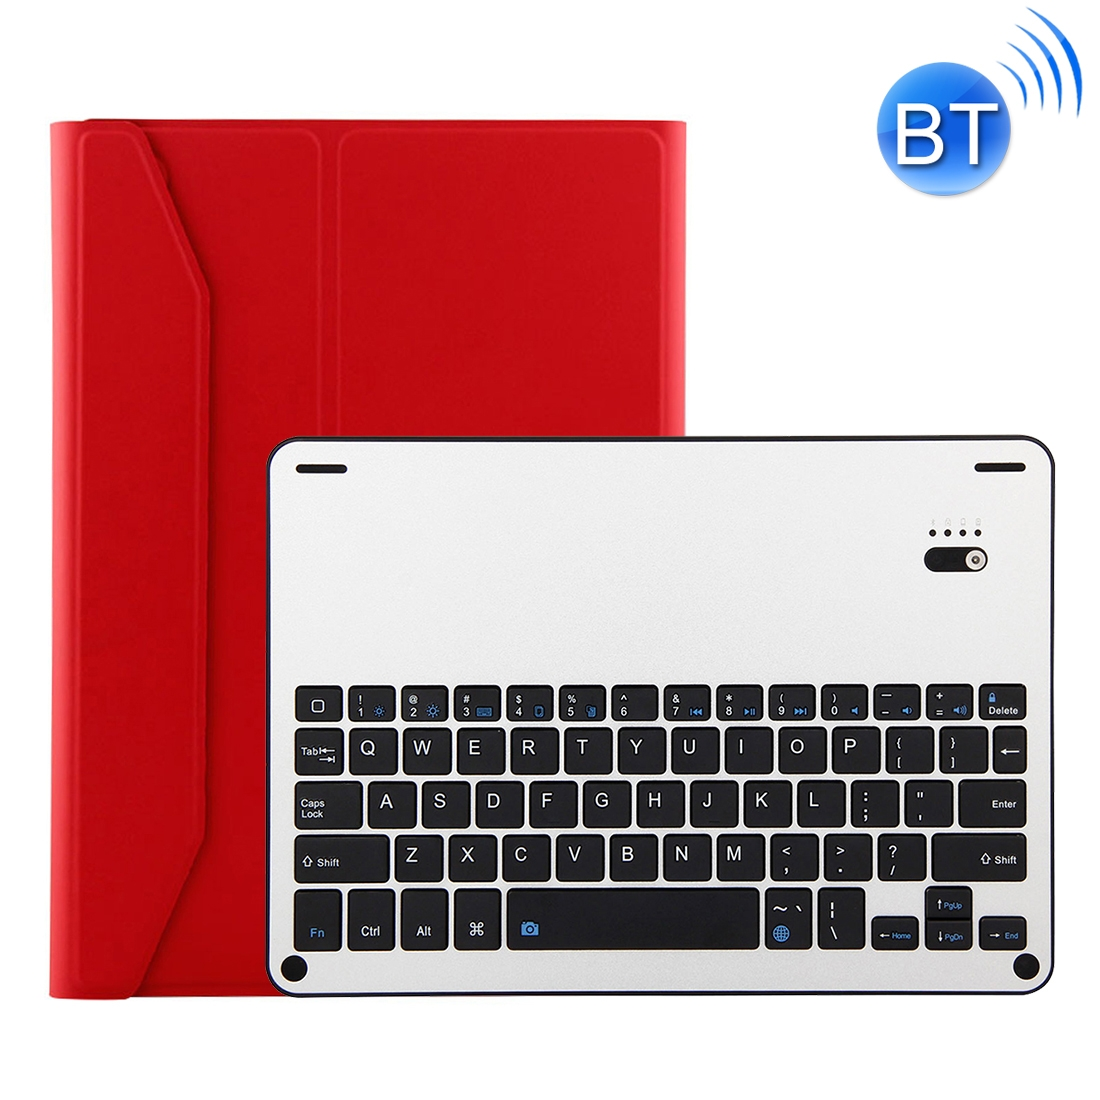 iPad Air 2 Case With Keyboard With Leather Case For iPad Air/Air 2/Pro 9.7 inch  (Red)